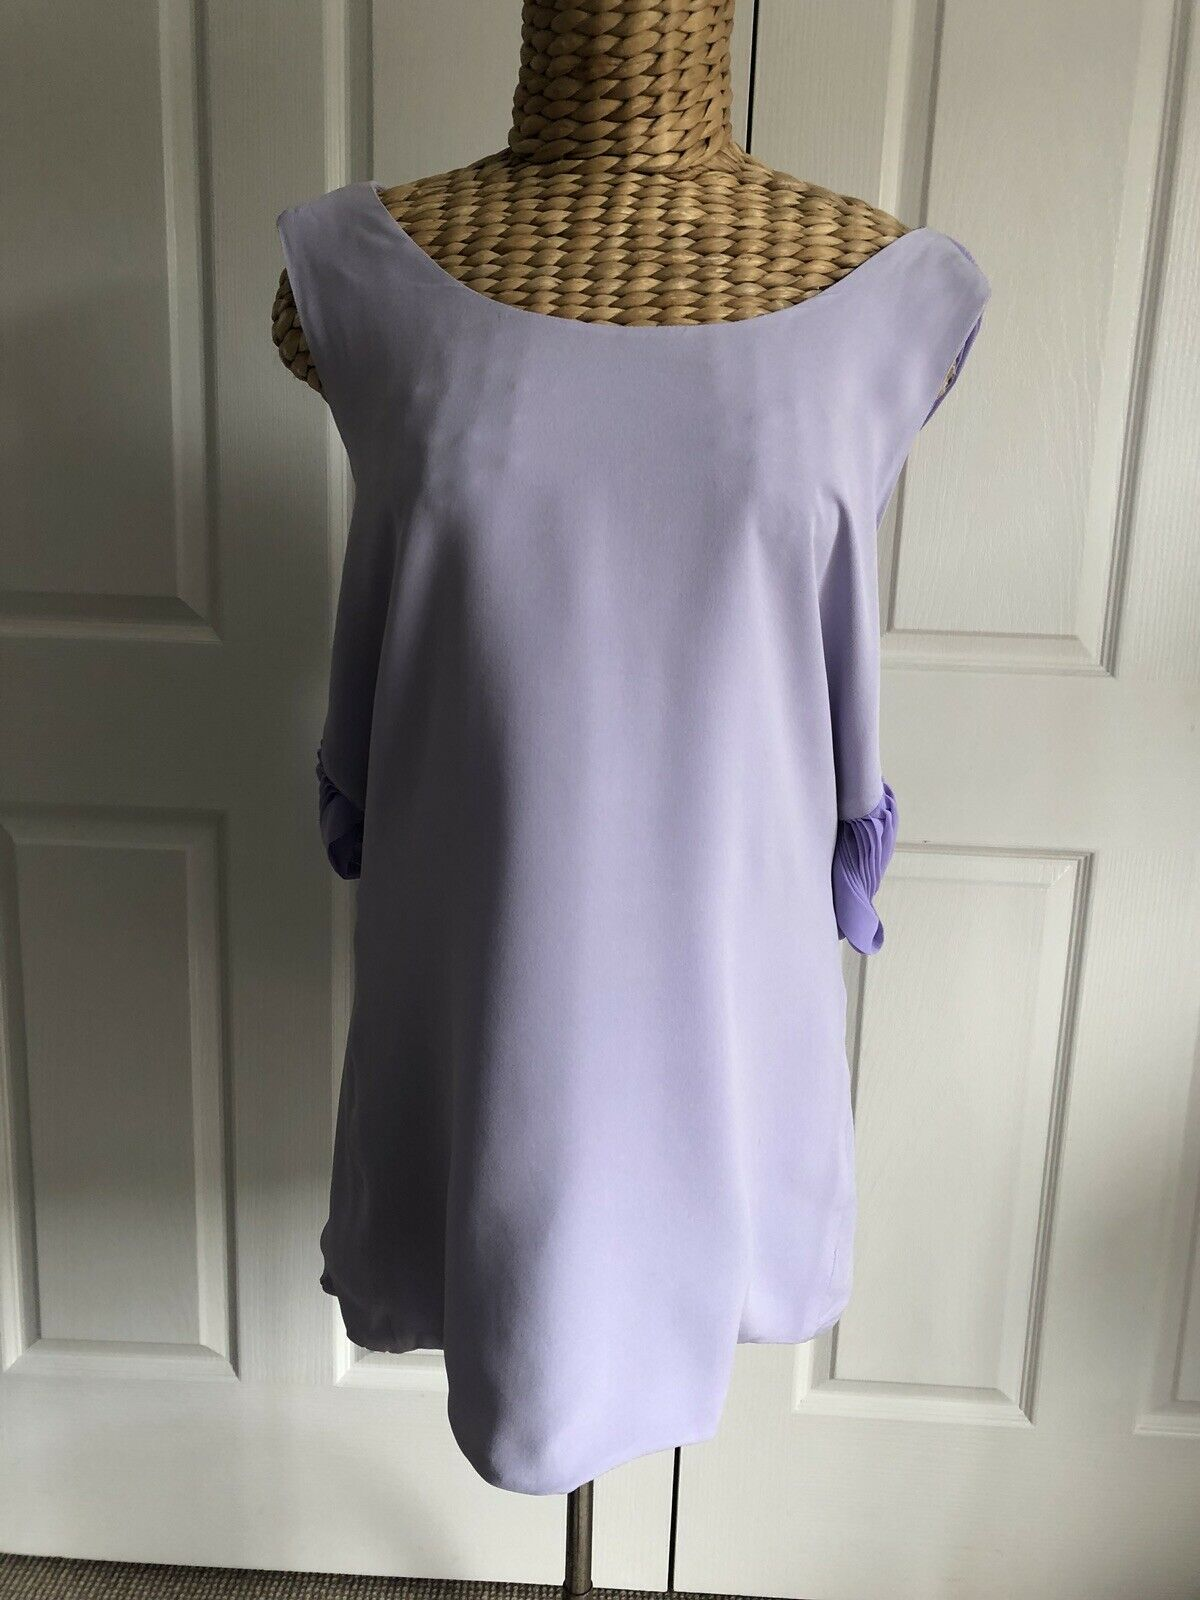 DION LEE SILK TOP Größe 14 NEW WITHOUT TAGS